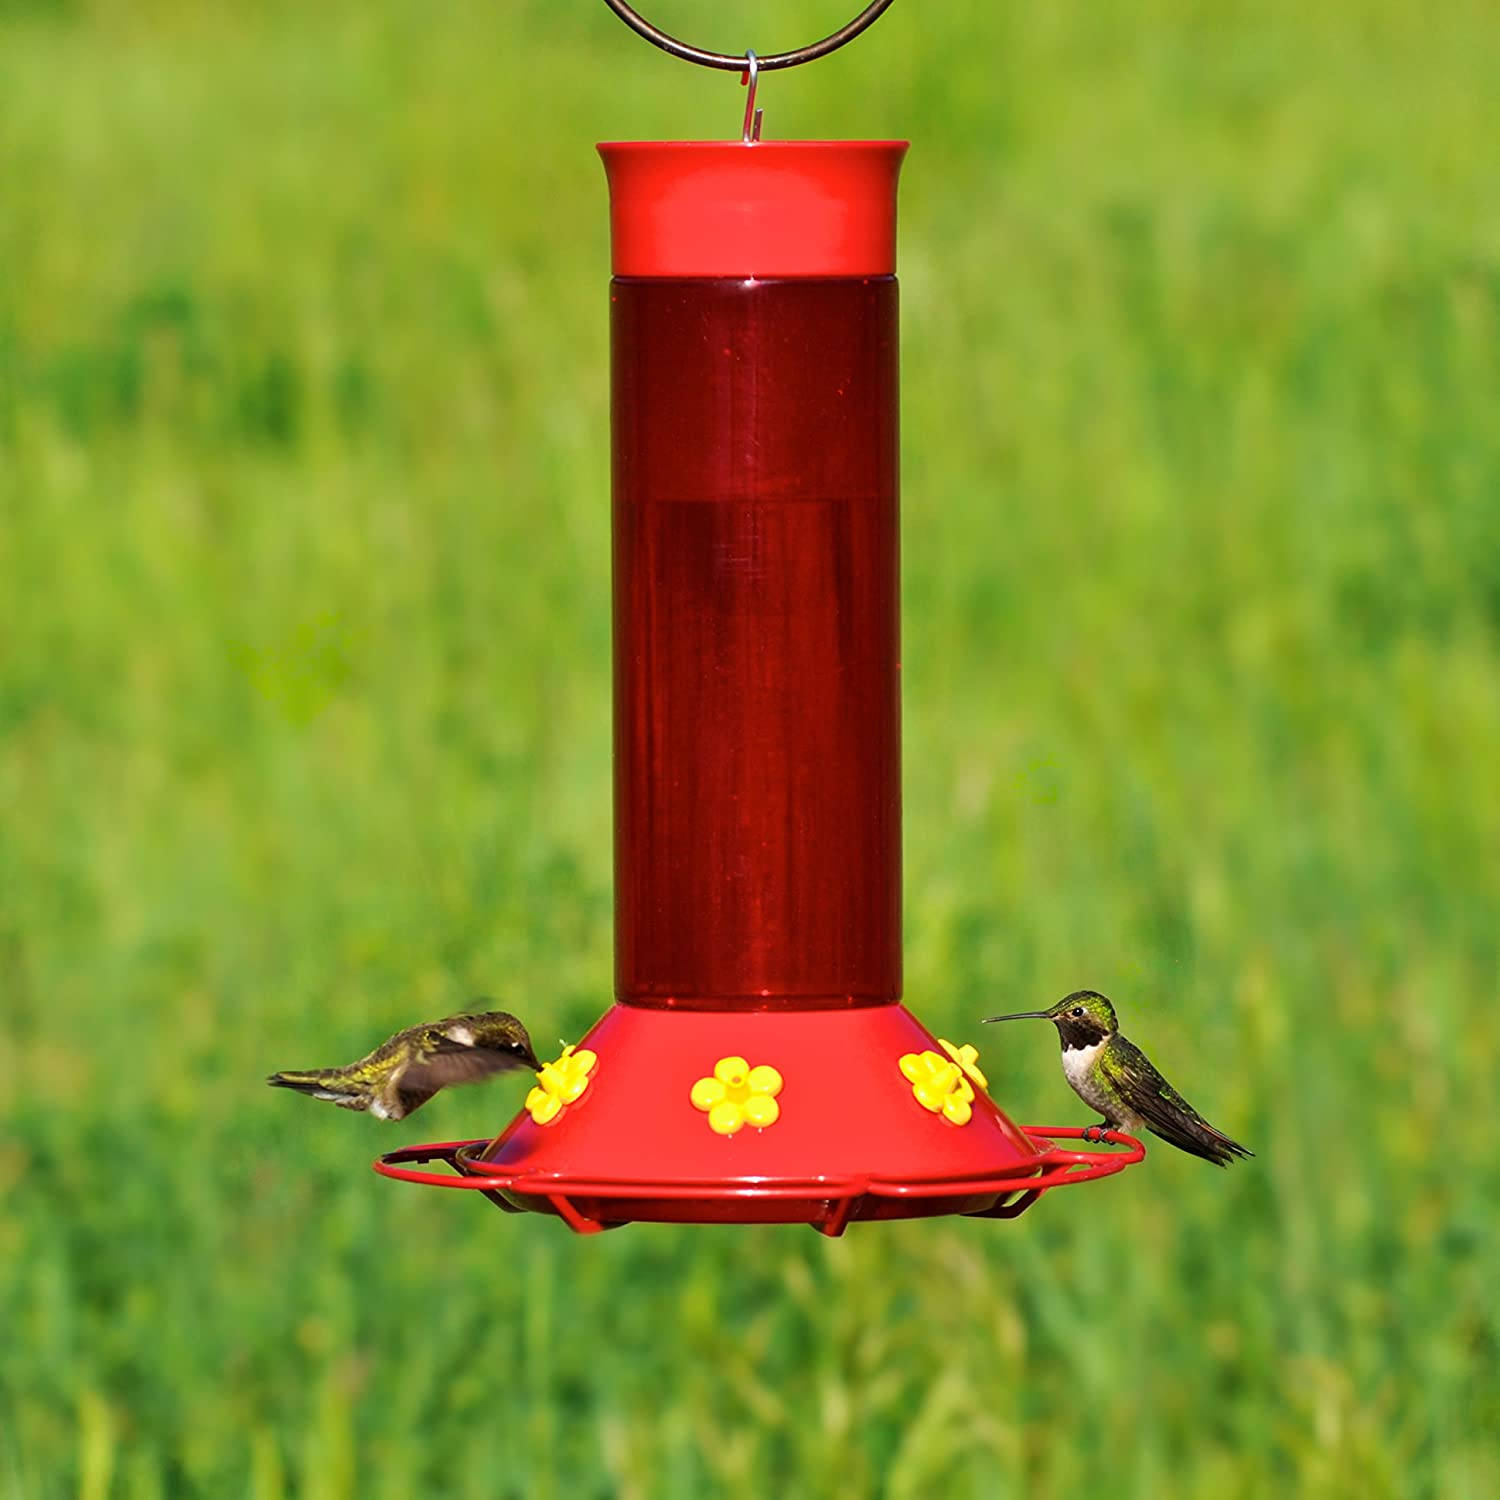 oasis dp com amazon feeder outdoor perky hummingbird garden feeders humingbird bird pet ounce